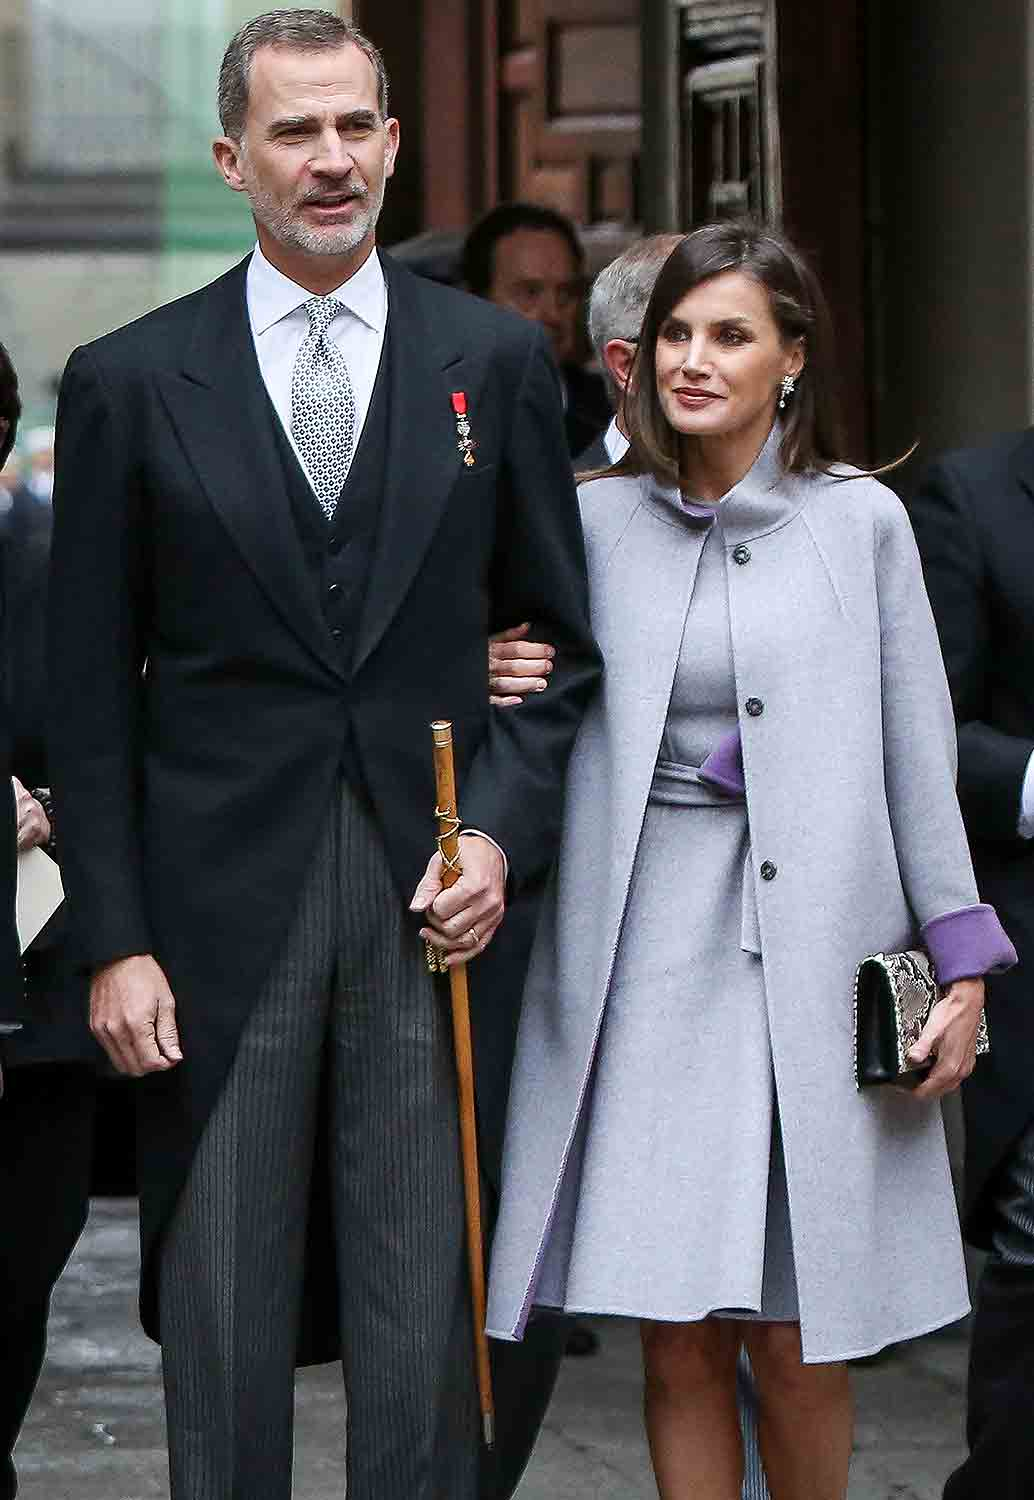 King Felipe VI of Spain and Queen Letizia of Spain